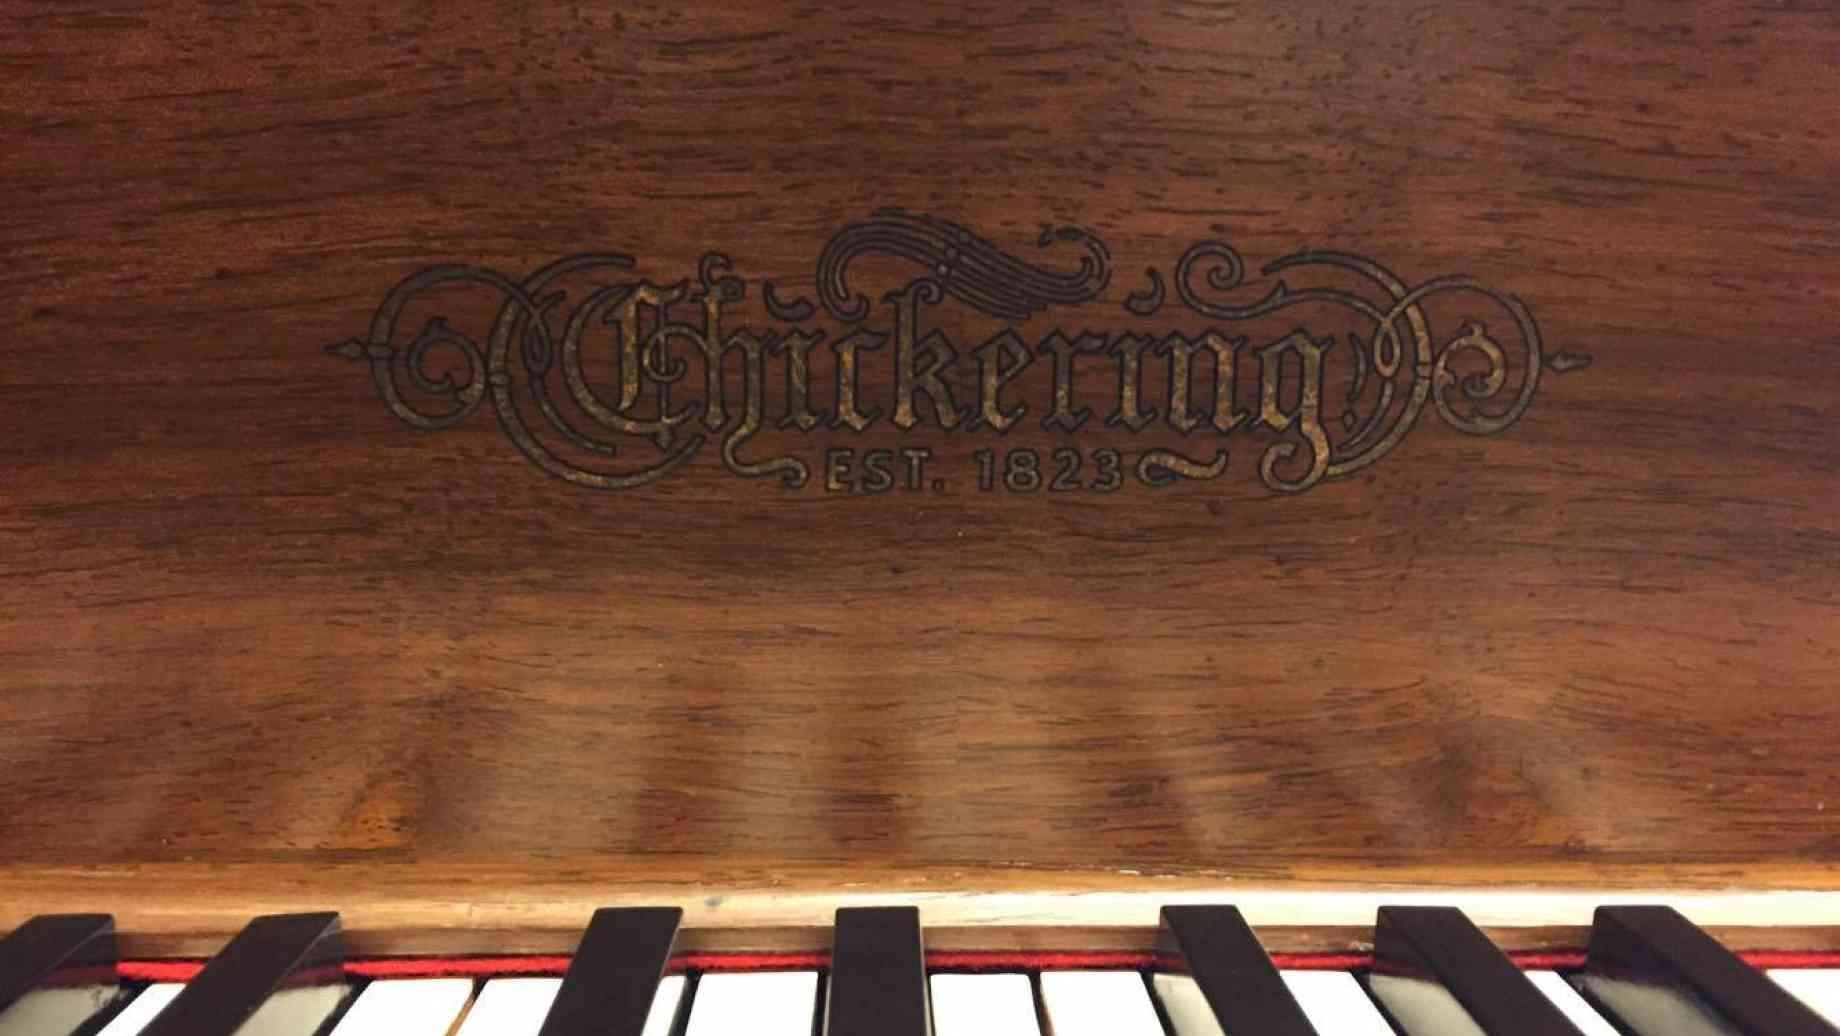 Chickering namplate